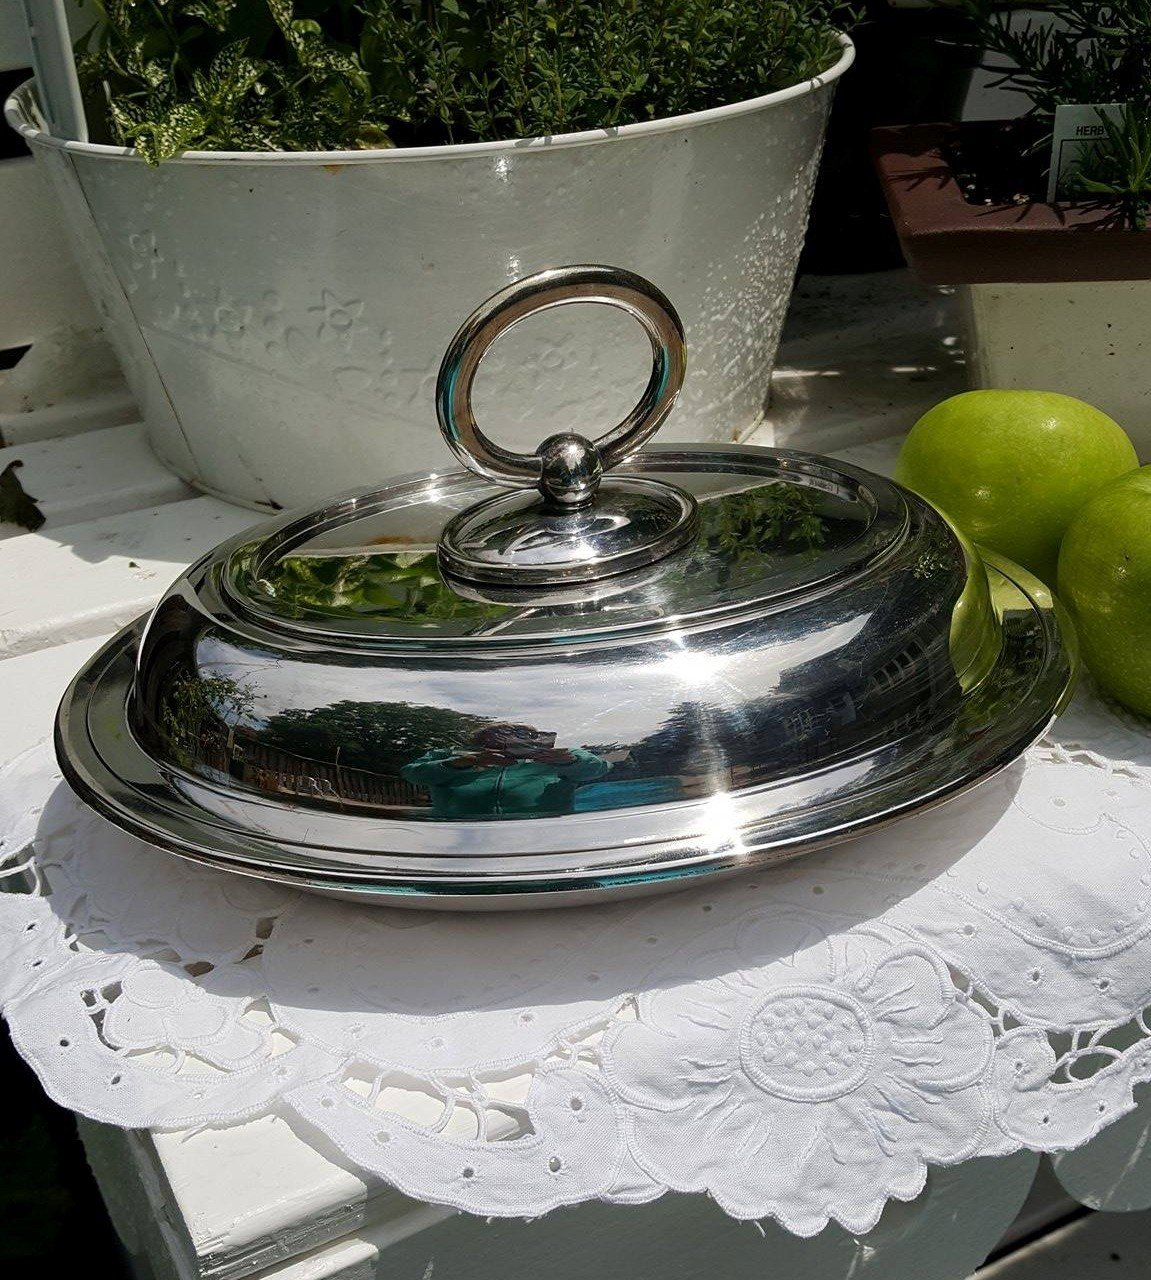 Heirloom Silver Serving Dish with Lid